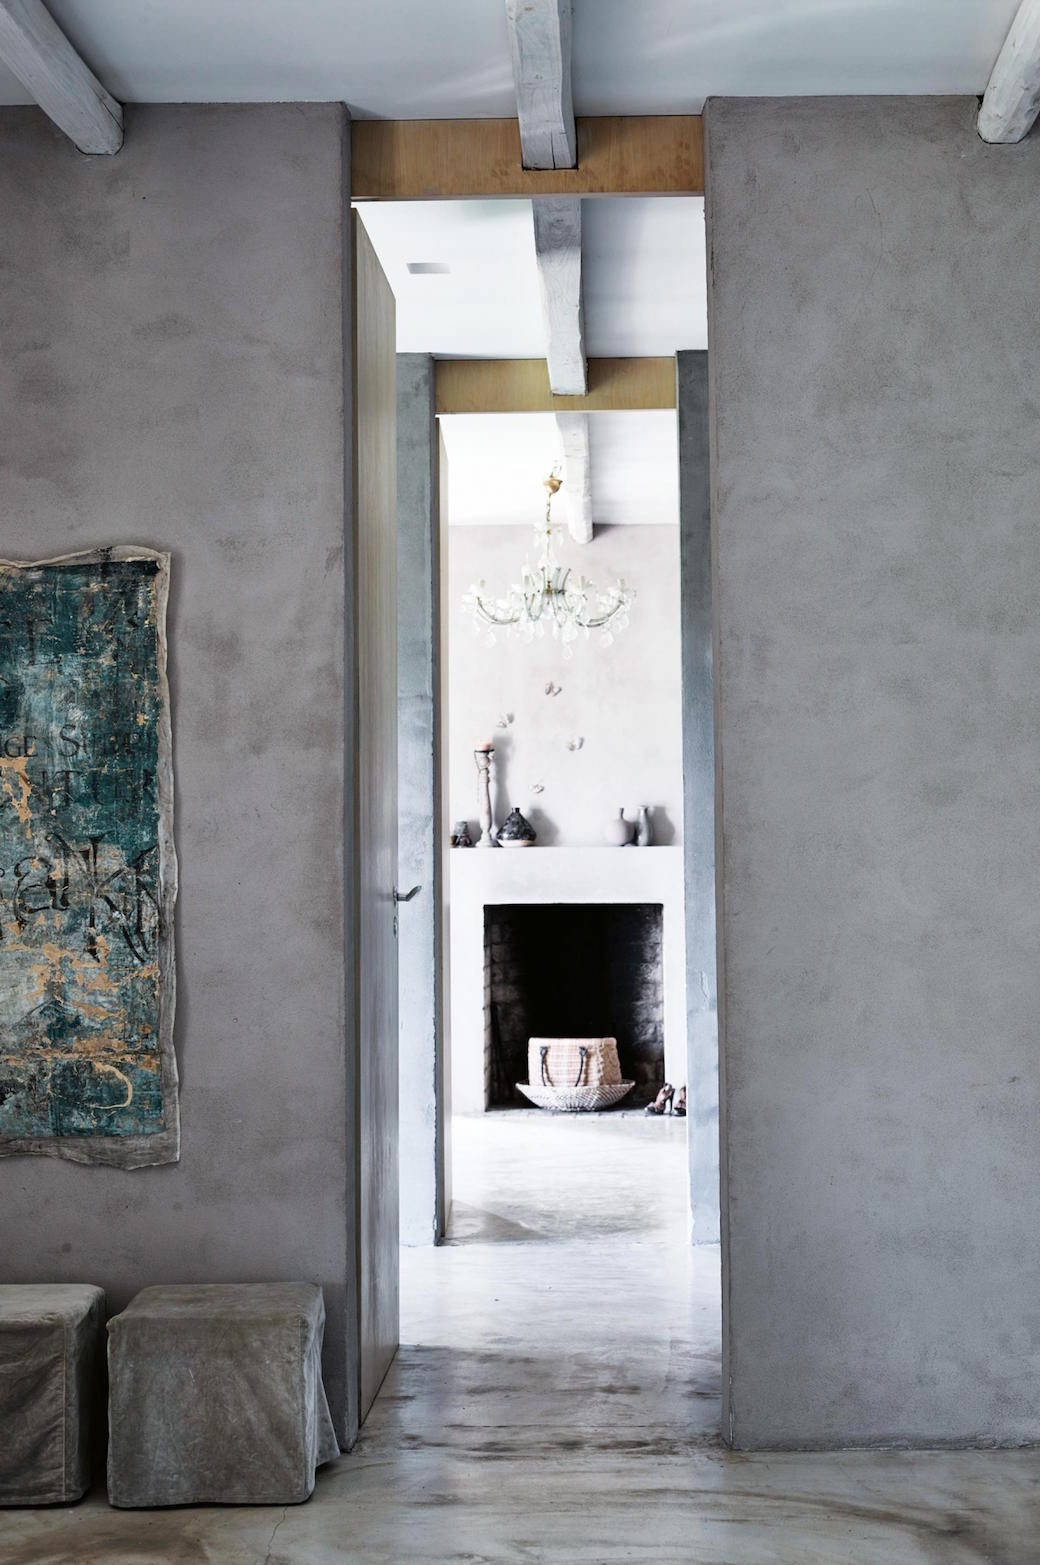 The Italian home of Hanne Poli. Photographer Fabrizio Cicconi/Living Inside with stylist Francesca Davoli.